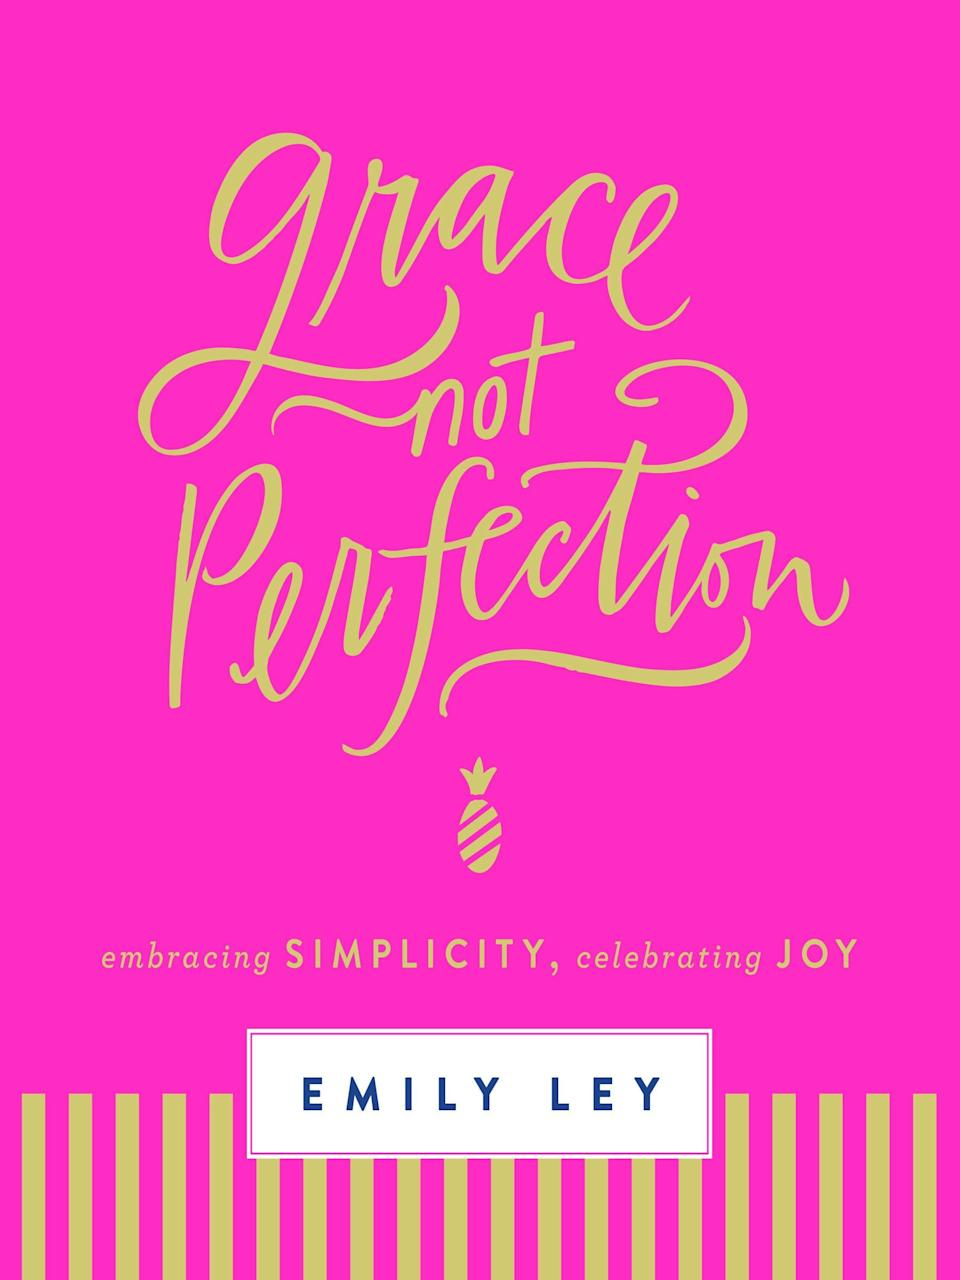 """<p><a href=""""https://www.emilyley.com"""" class=""""link rapid-noclick-resp"""" rel=""""nofollow noopener"""" target=""""_blank"""" data-ylk=""""slk:Emily Ley"""">Emily Ley</a> is a busy mom of three young children. She is the creator of a very popular life planner called the Simplified Planner and a self-taught designer. Even with her busy life, she felt that it was incredibly important to explore a topic that she was passionate about in <strong><span>Grace, Not Perfection</span></strong>: the idea of simplifying. Ley feared that there were many women like her out there who had become trapped on the """"hamster wheel of trying to do it all."""" She wanted to bring to light the power of grace over perfection and how people tend to take life too seriously.</p>"""